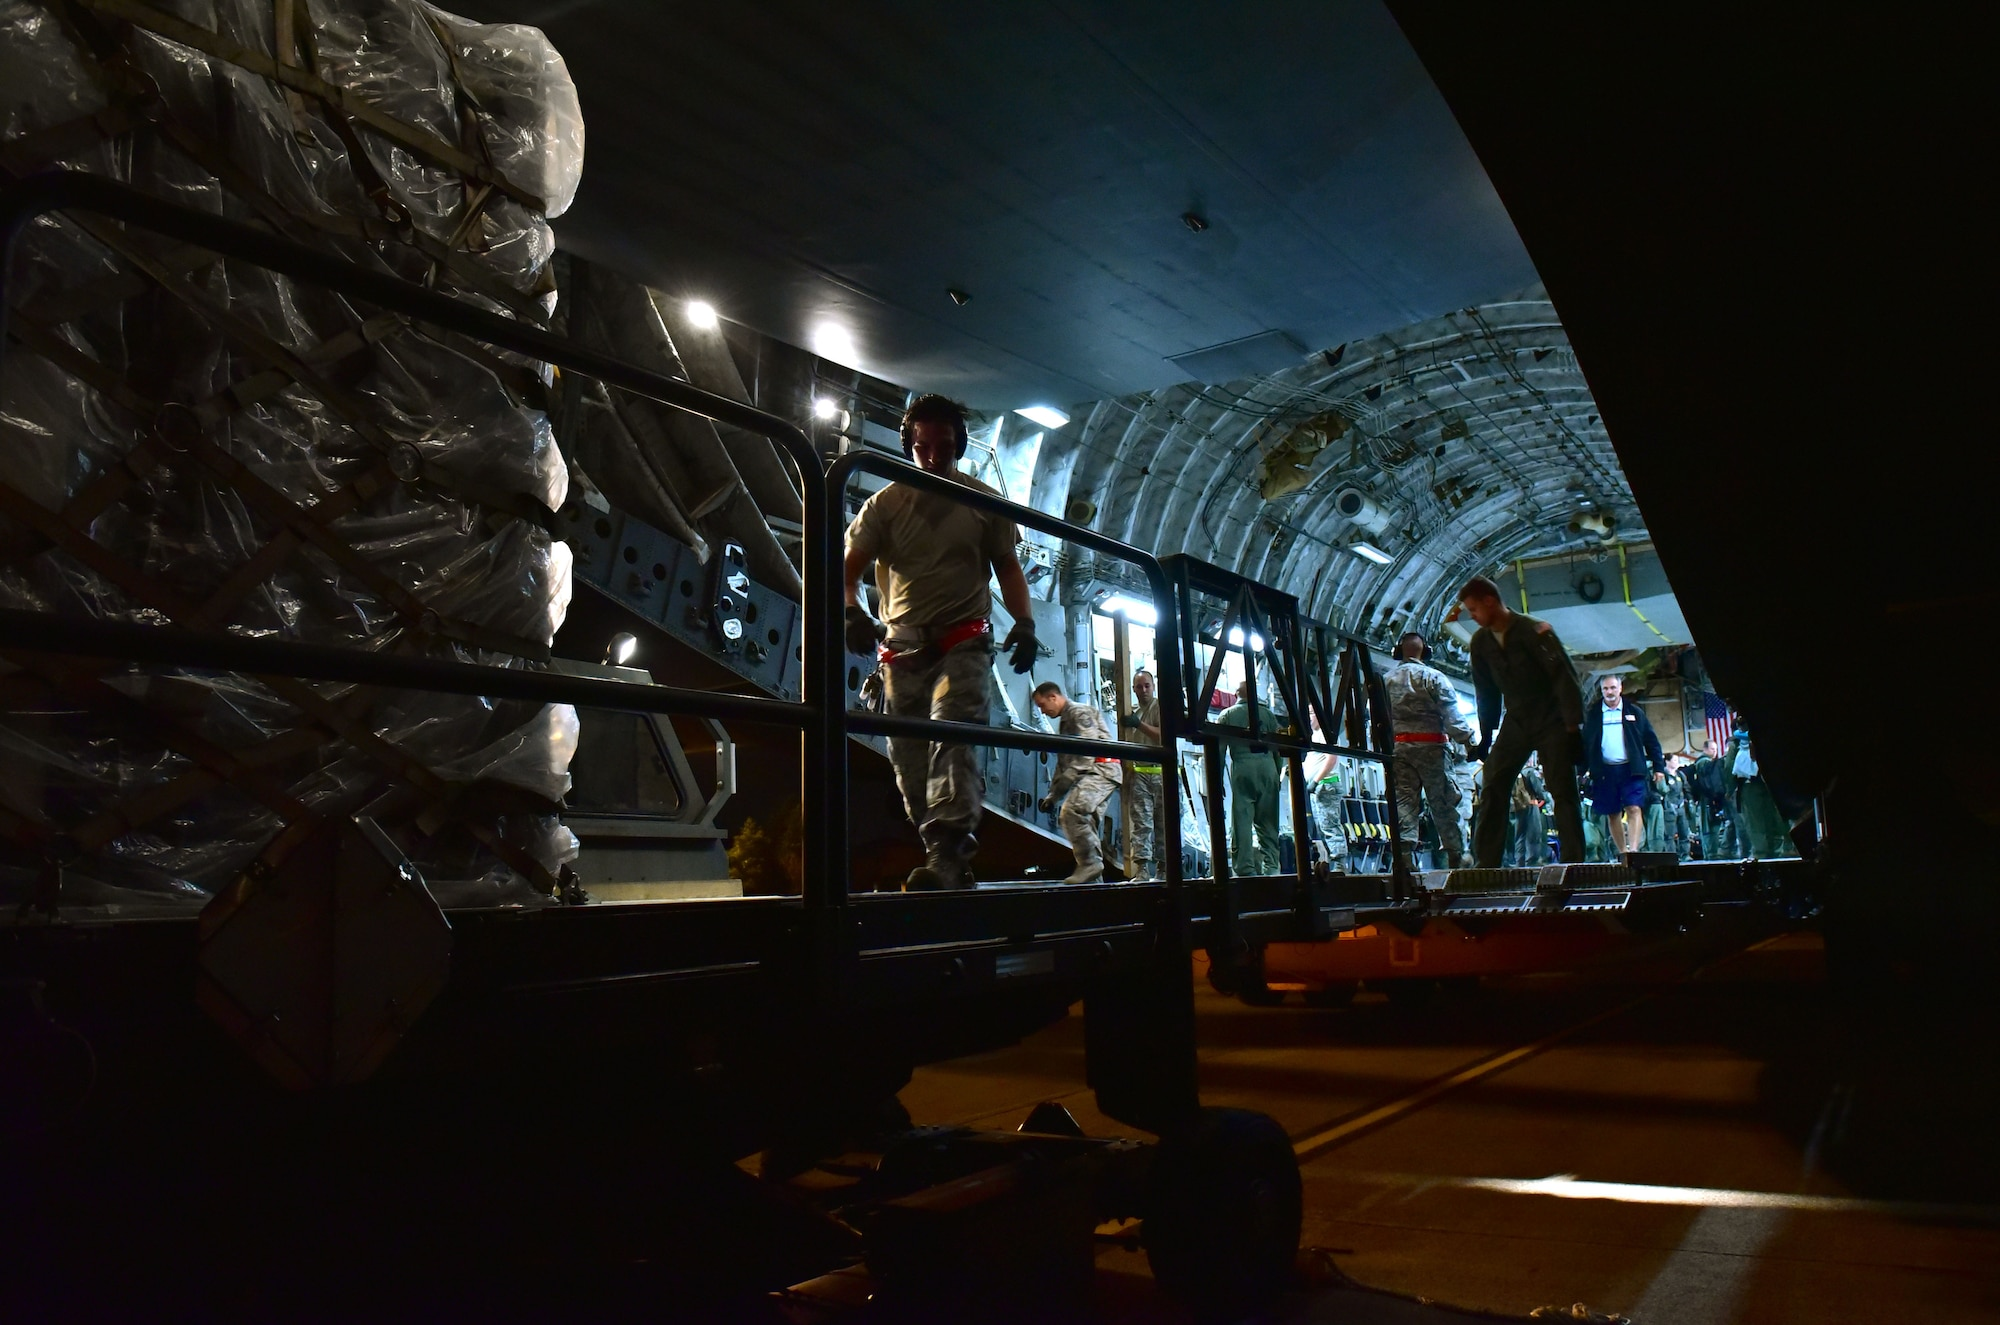 Cargo is loaded onto a C-17 by U.S. Airmen at night.